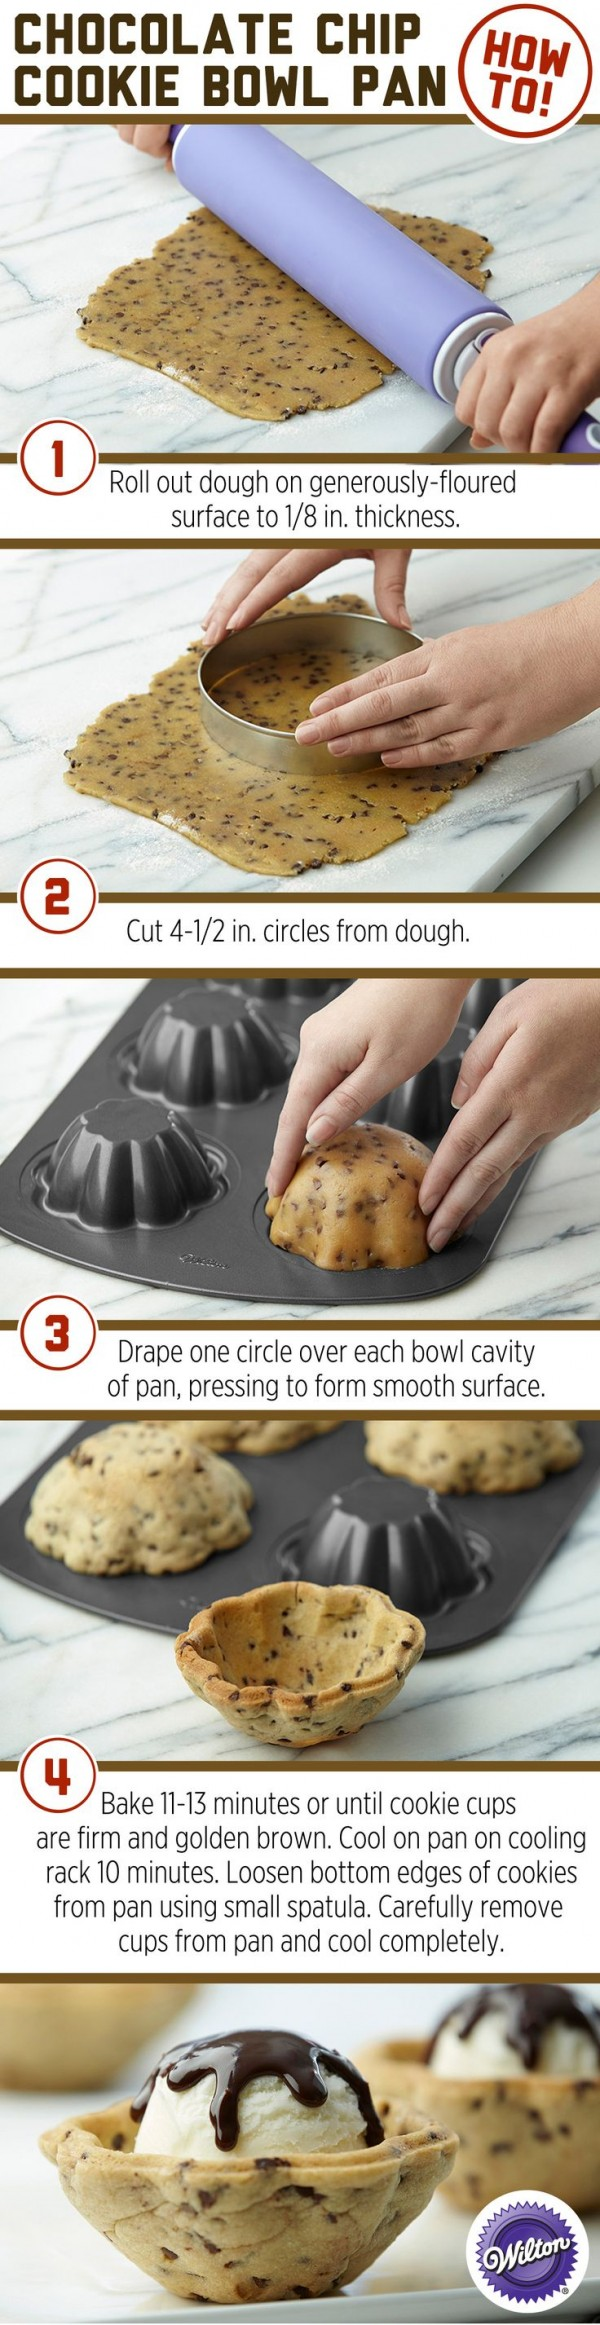 muffin pan ideas9